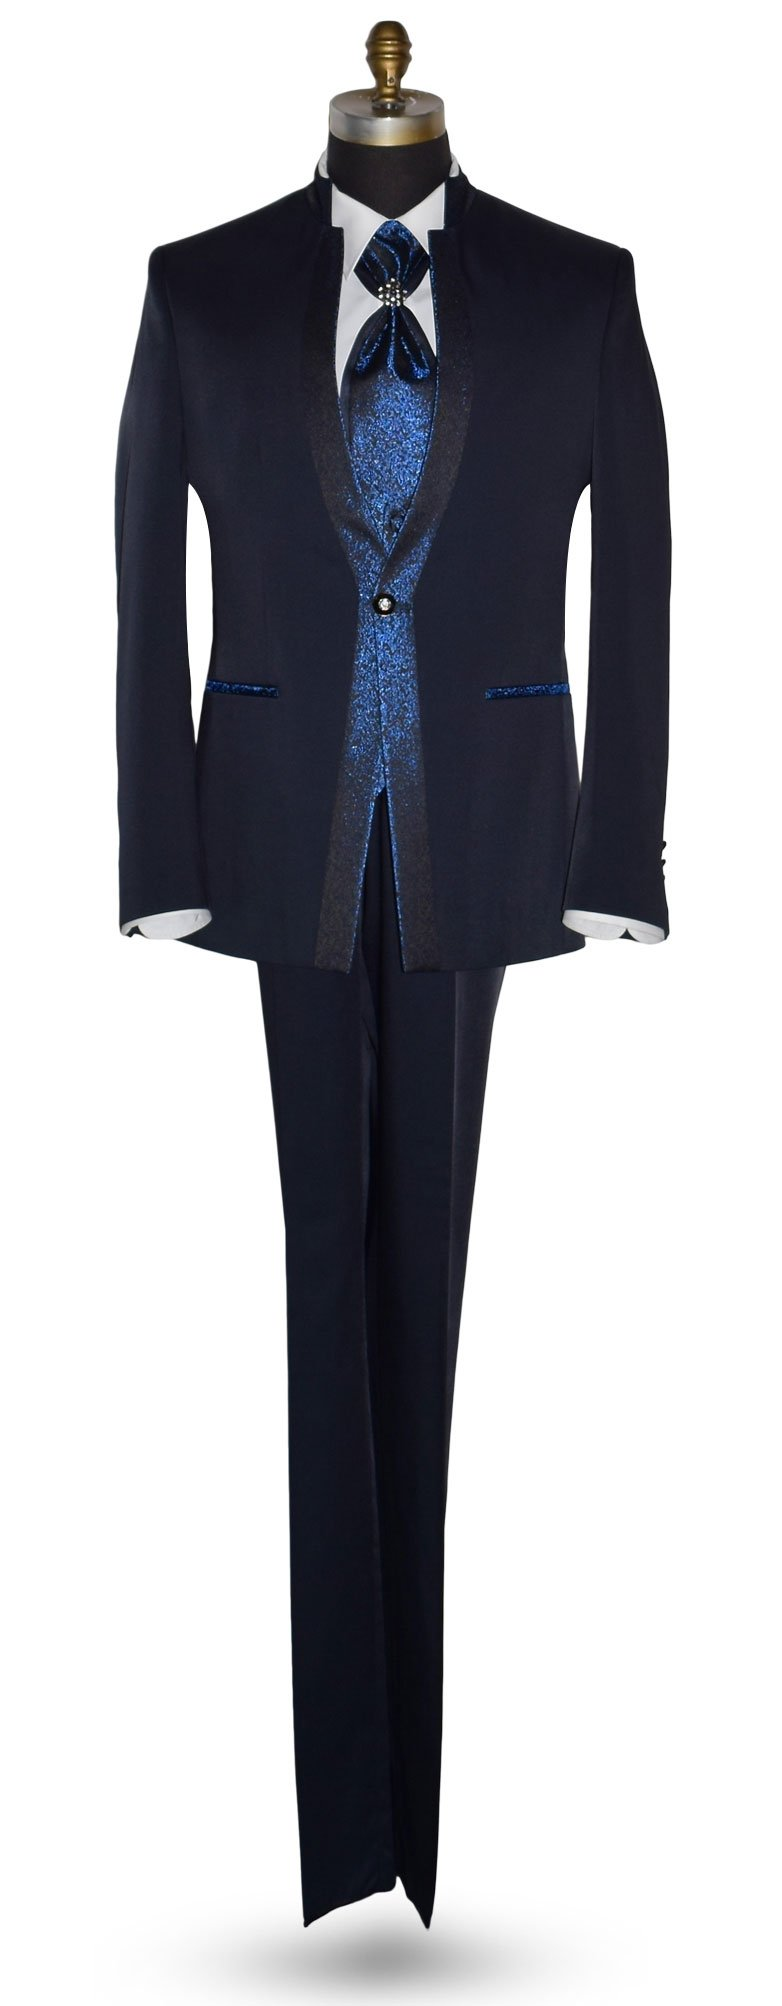 Midnight Blue Nehru Tuxedo Ensemble With Royal Blue Accents